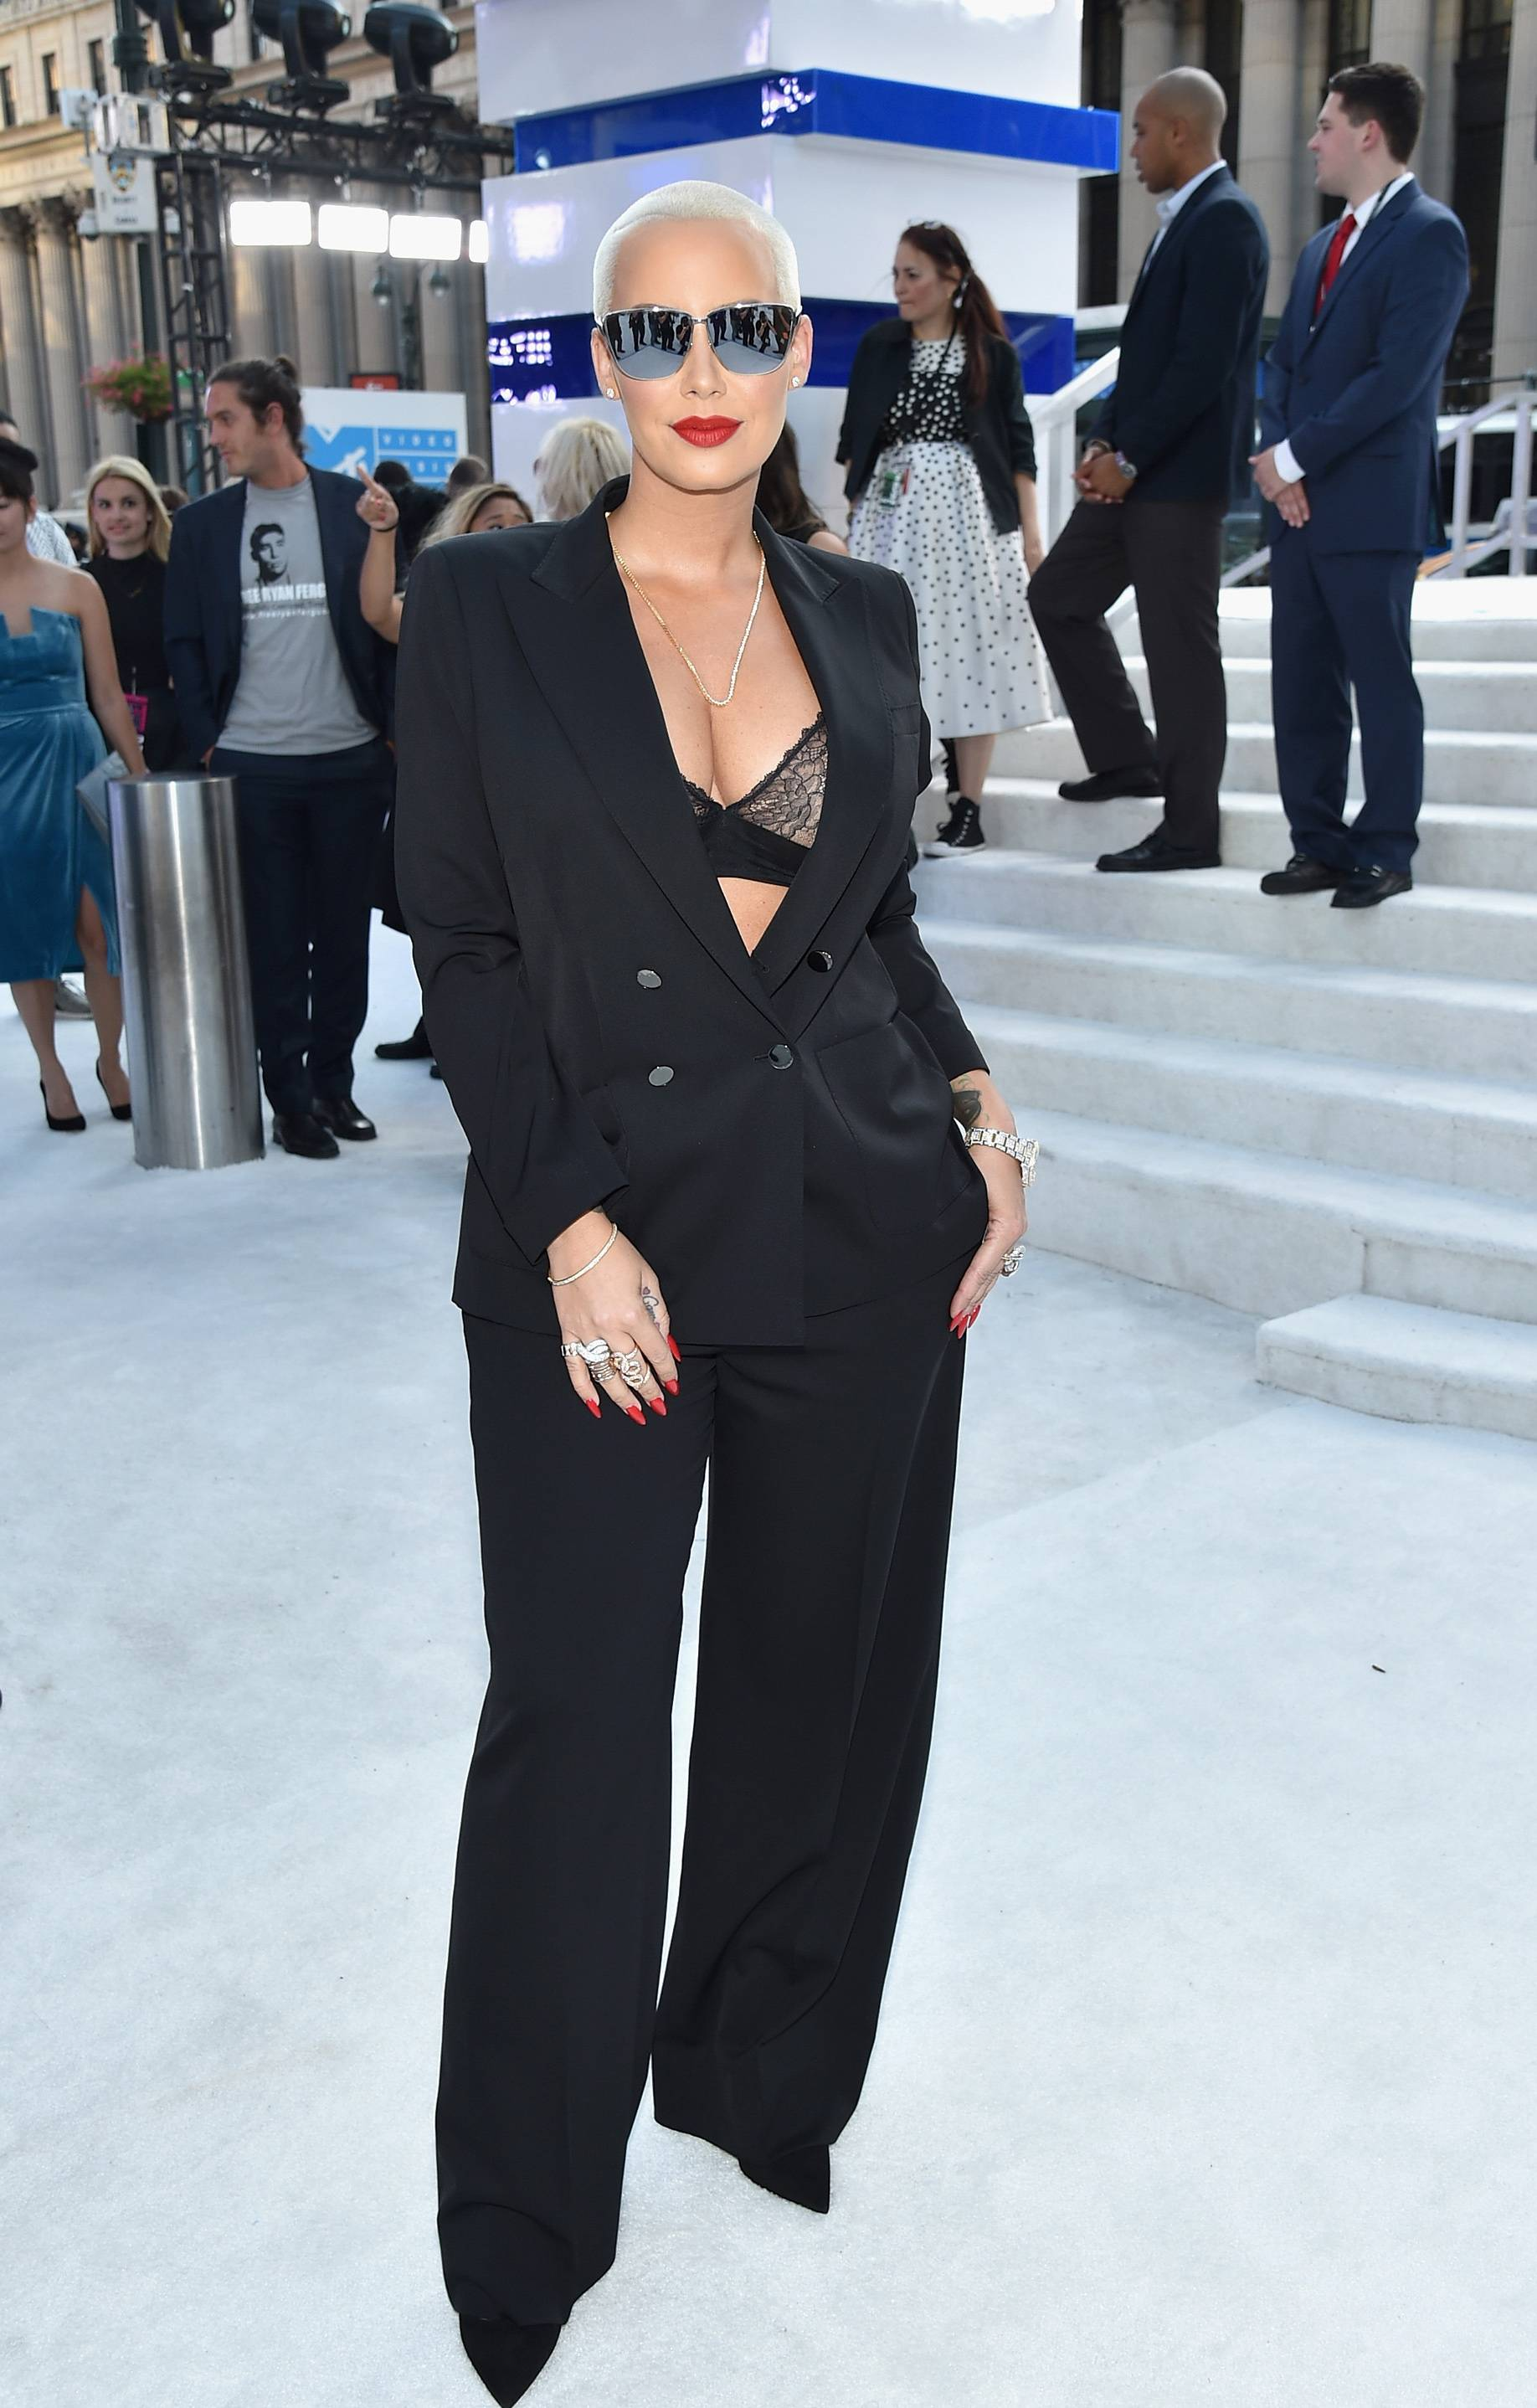 Amber Rose bares some skin in an all black mensware-inspired ensemble on the 2016 VMA red carpet.